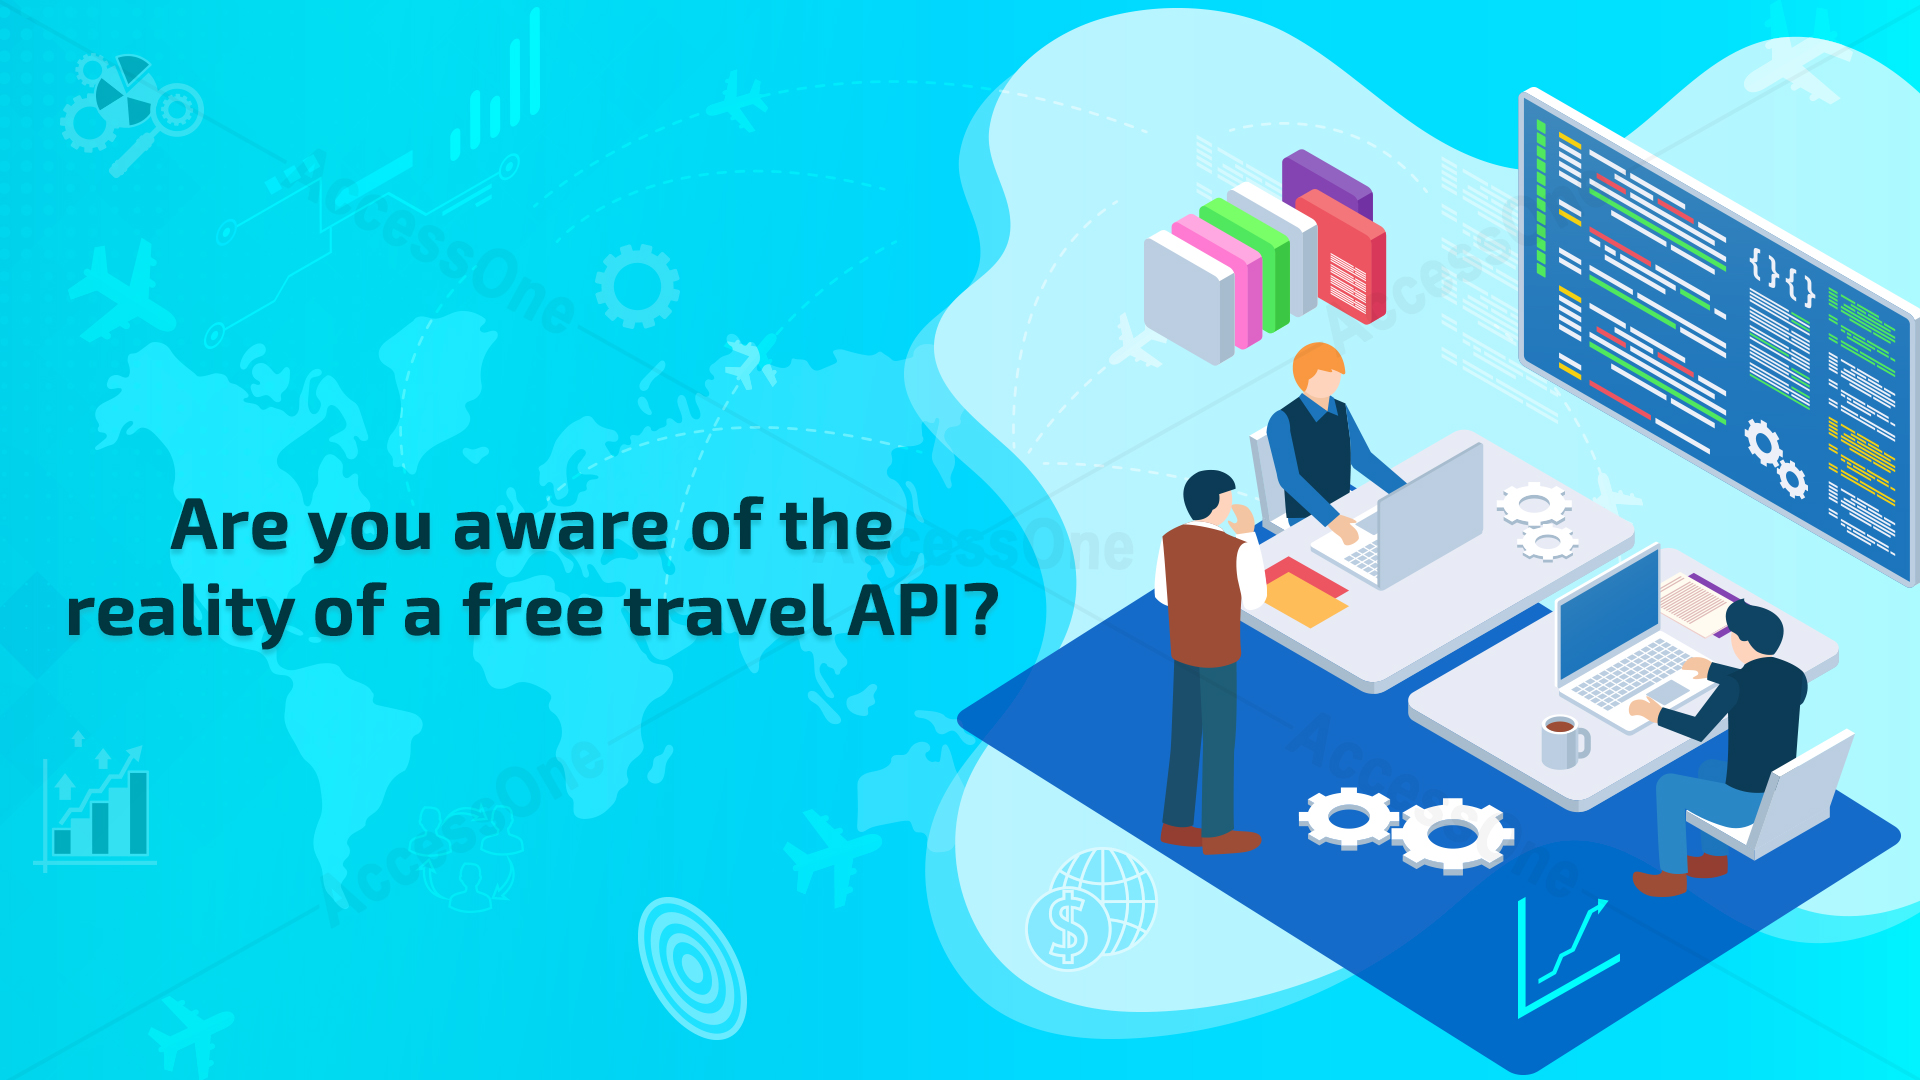 Are you aware of the reality of a free travel API?